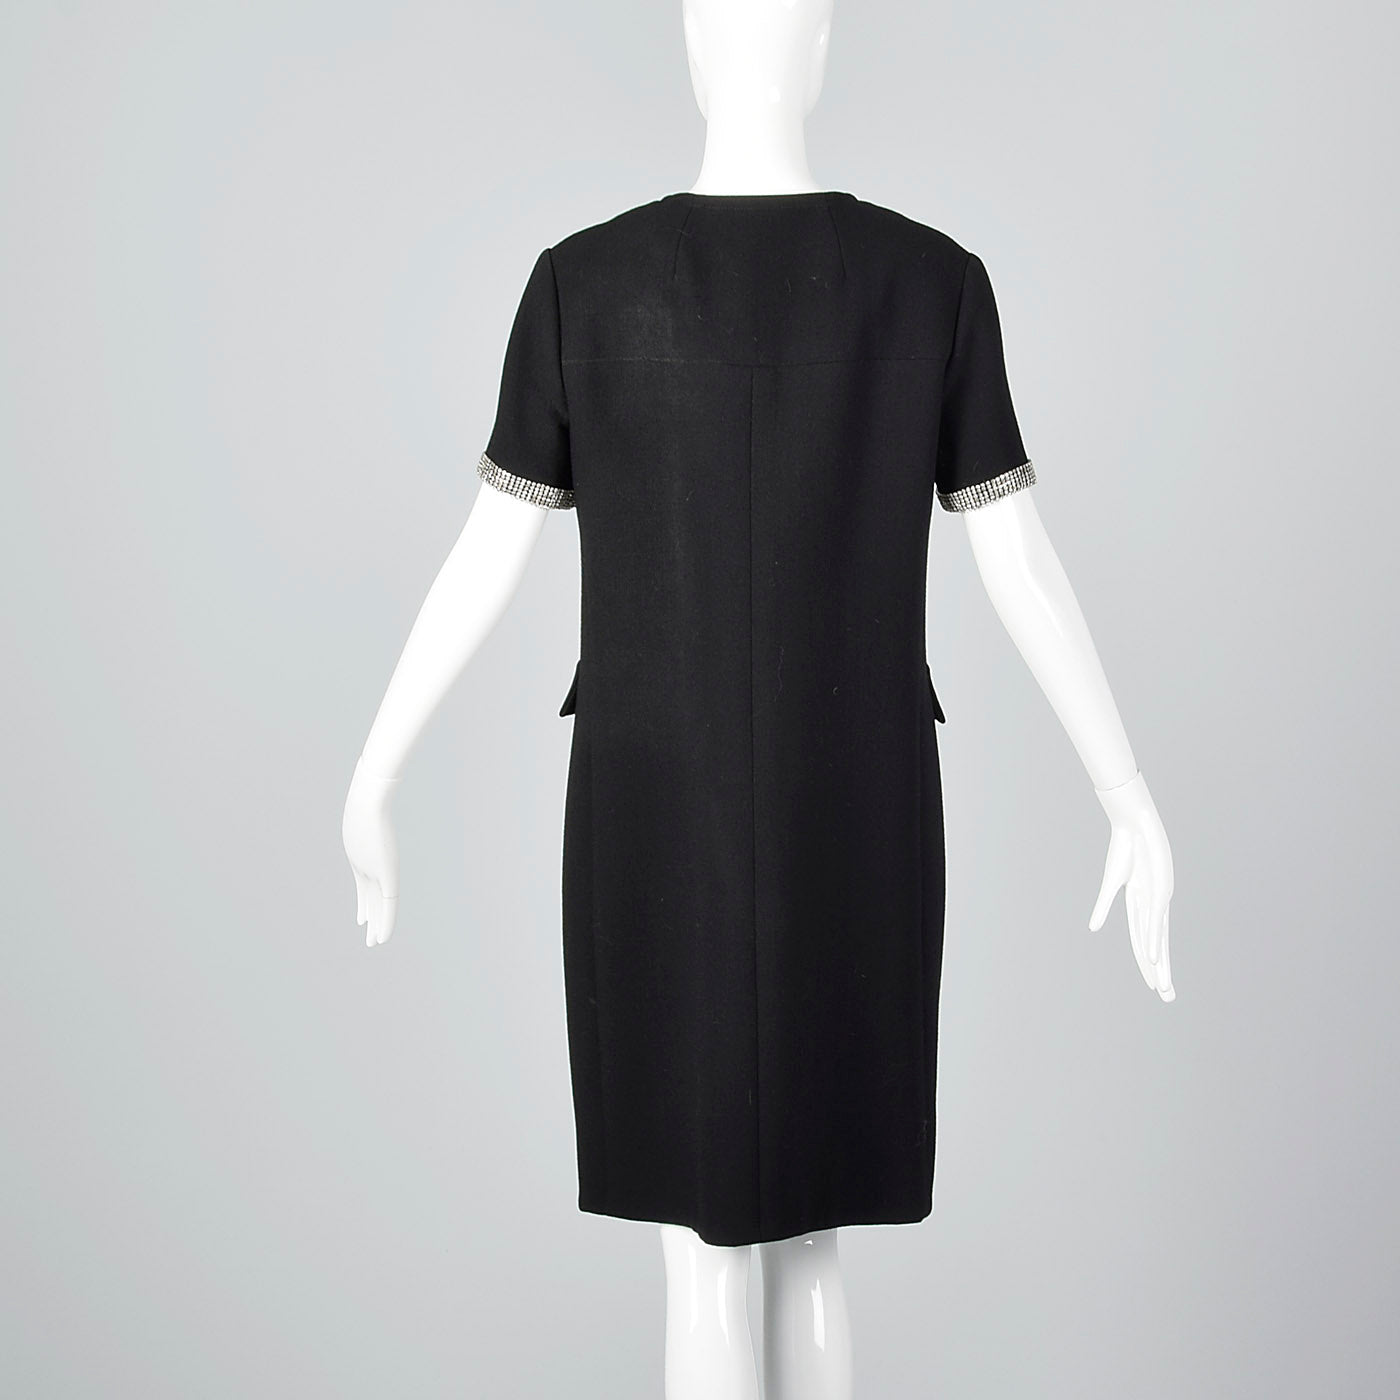 1960s Black Wool Dress with Rhinestone Trim